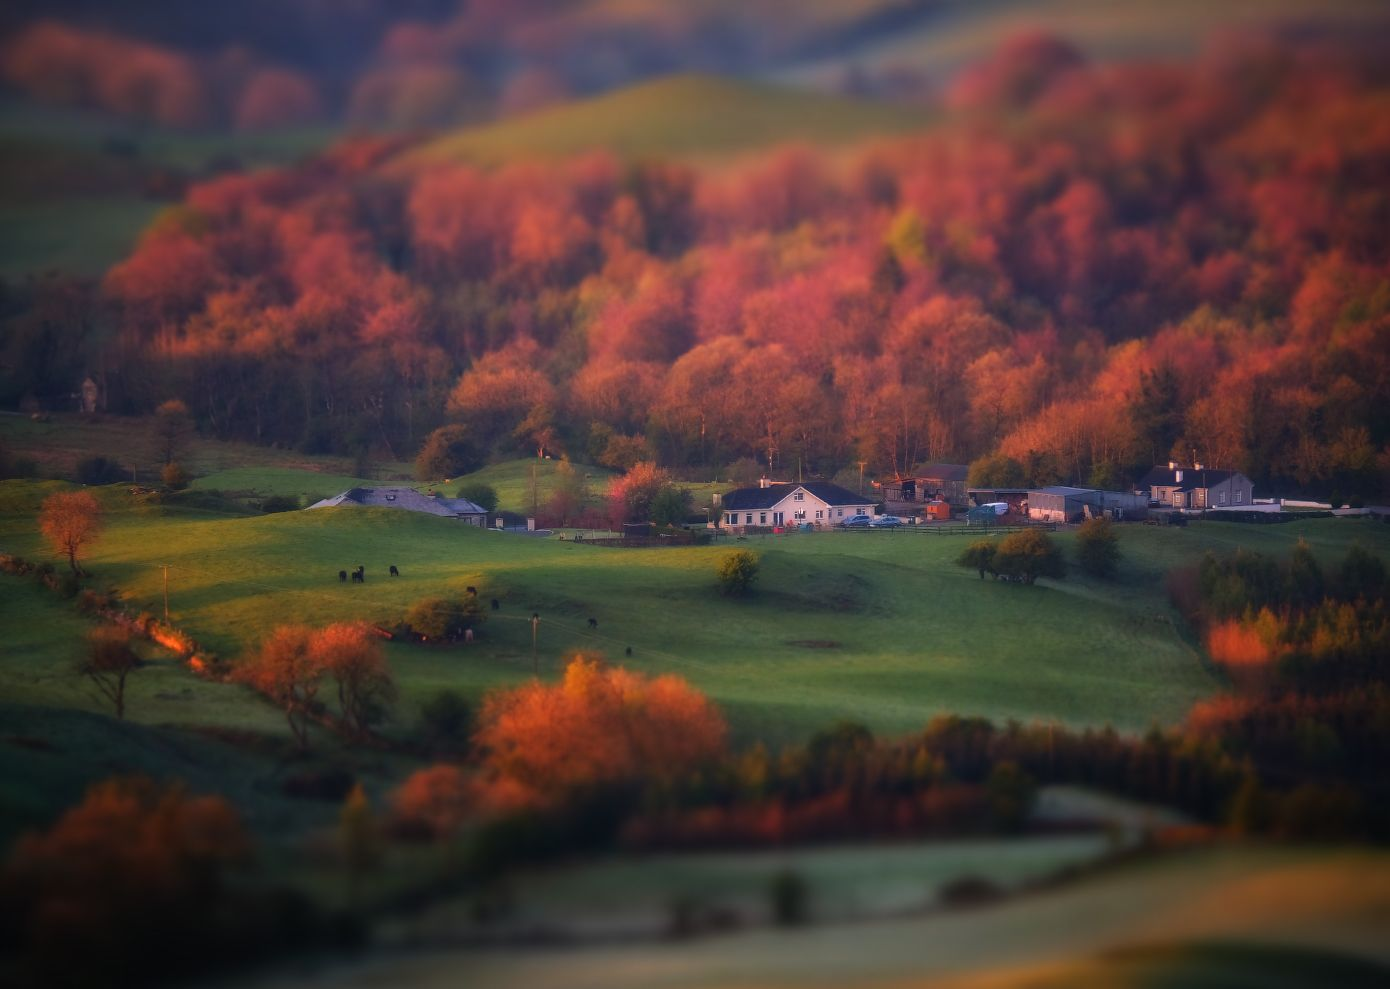 ...Irish toy scape... ireland nature outdoors landscape toyscape countryside rural morning sunrise dawn colored tinted bright slopes hills tones shades cottage farm trees scenic scenery picturesque wonderful awe europe tilt shift and miniature blured from above